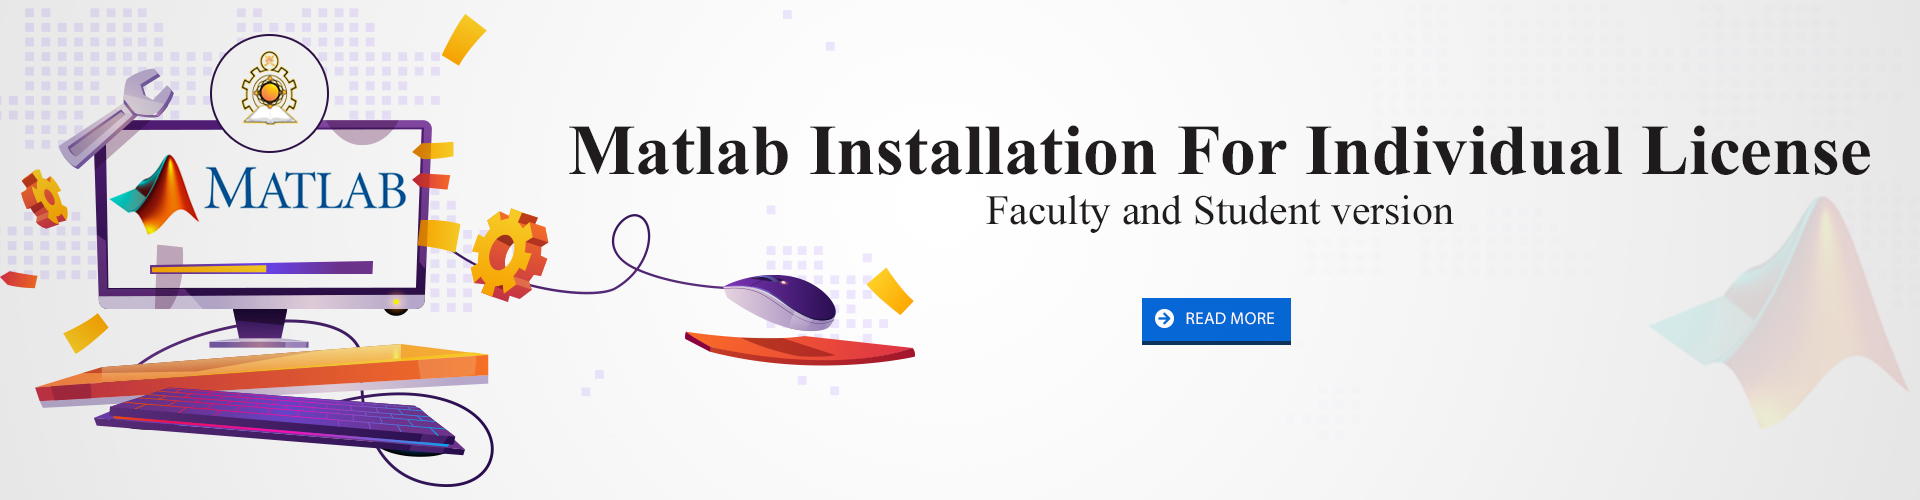 Matlab Installation For Individual License (Faculty and Student Version)